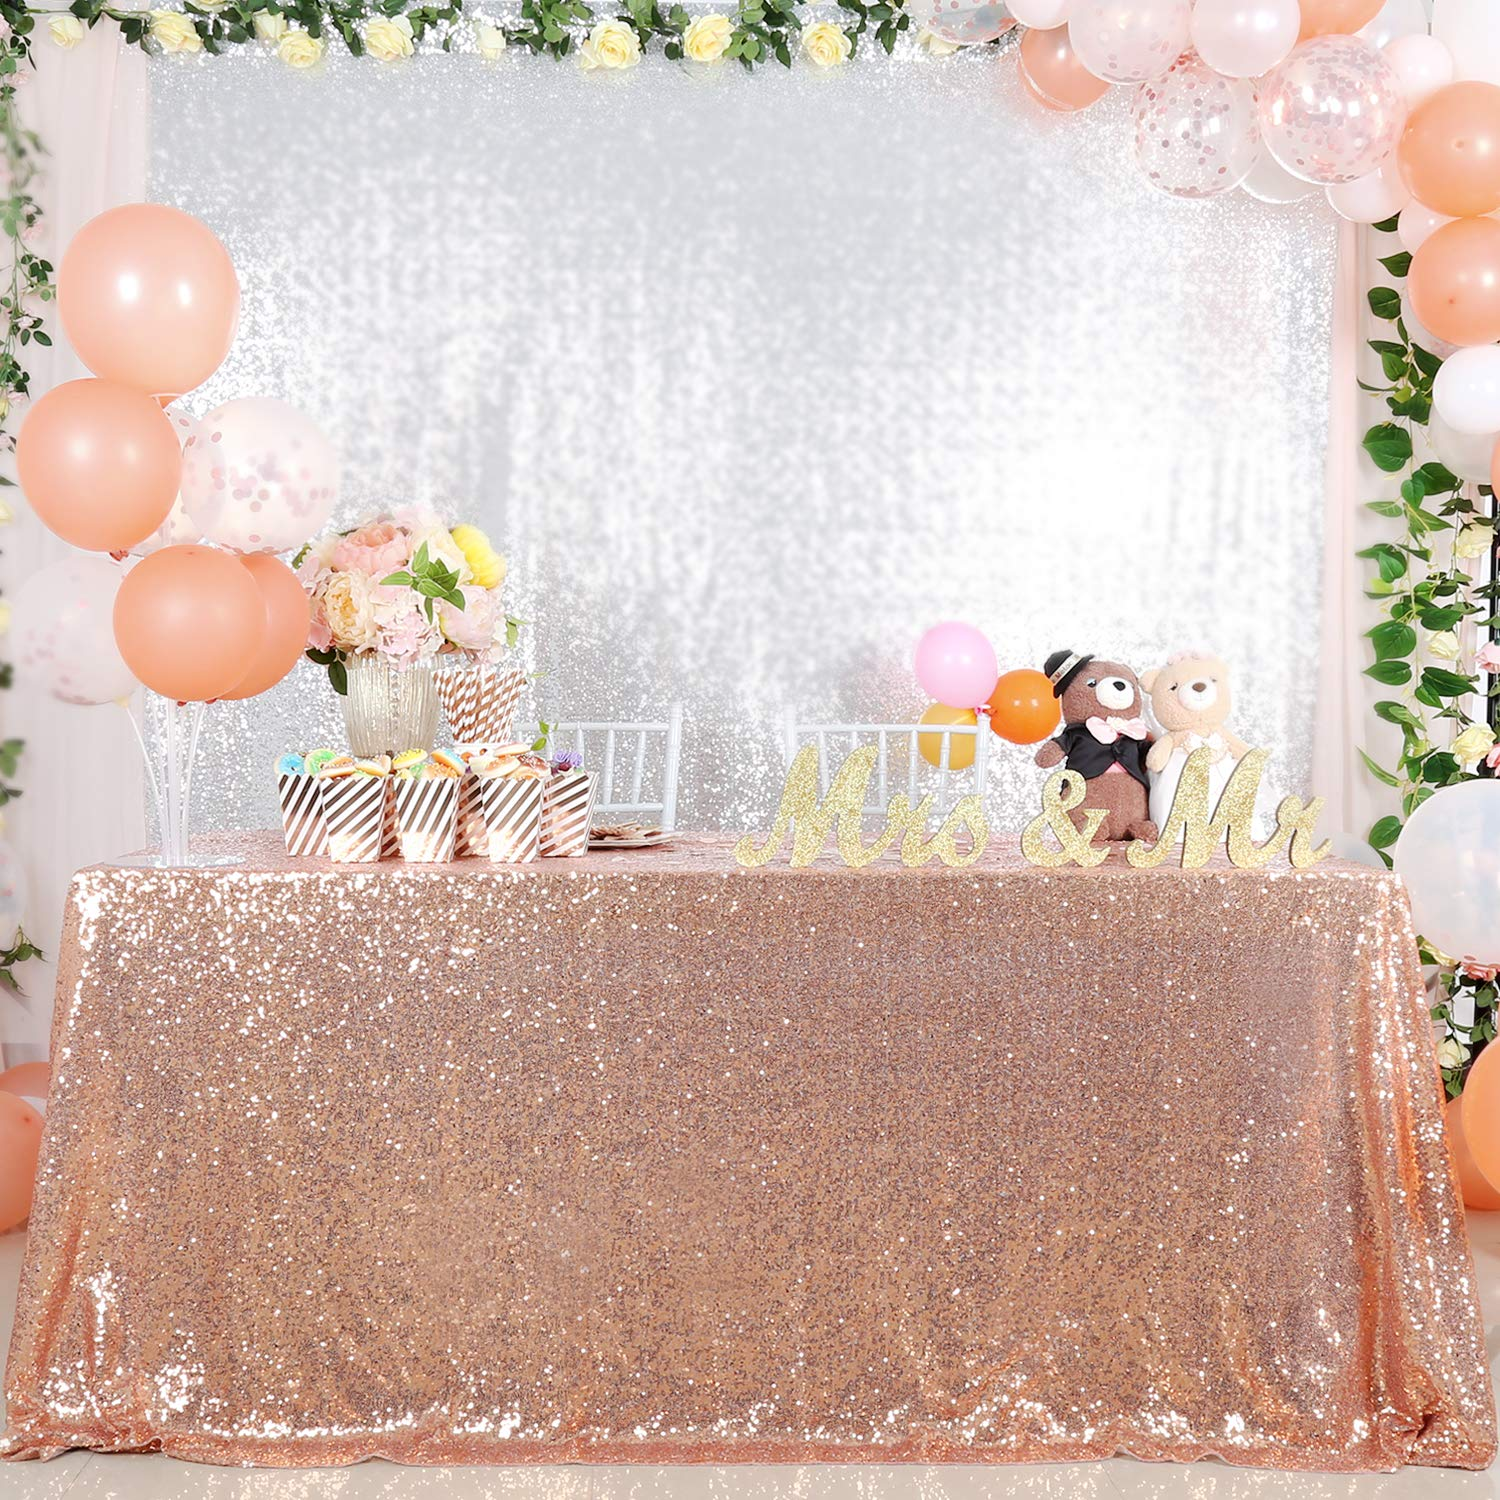 B-COOL Rose Gold Sequin Tablecloth 60x102inches Wedding Table Cloth Sparkle Sequin Linens Rectangular Birthday Table Overlays by B-COOL